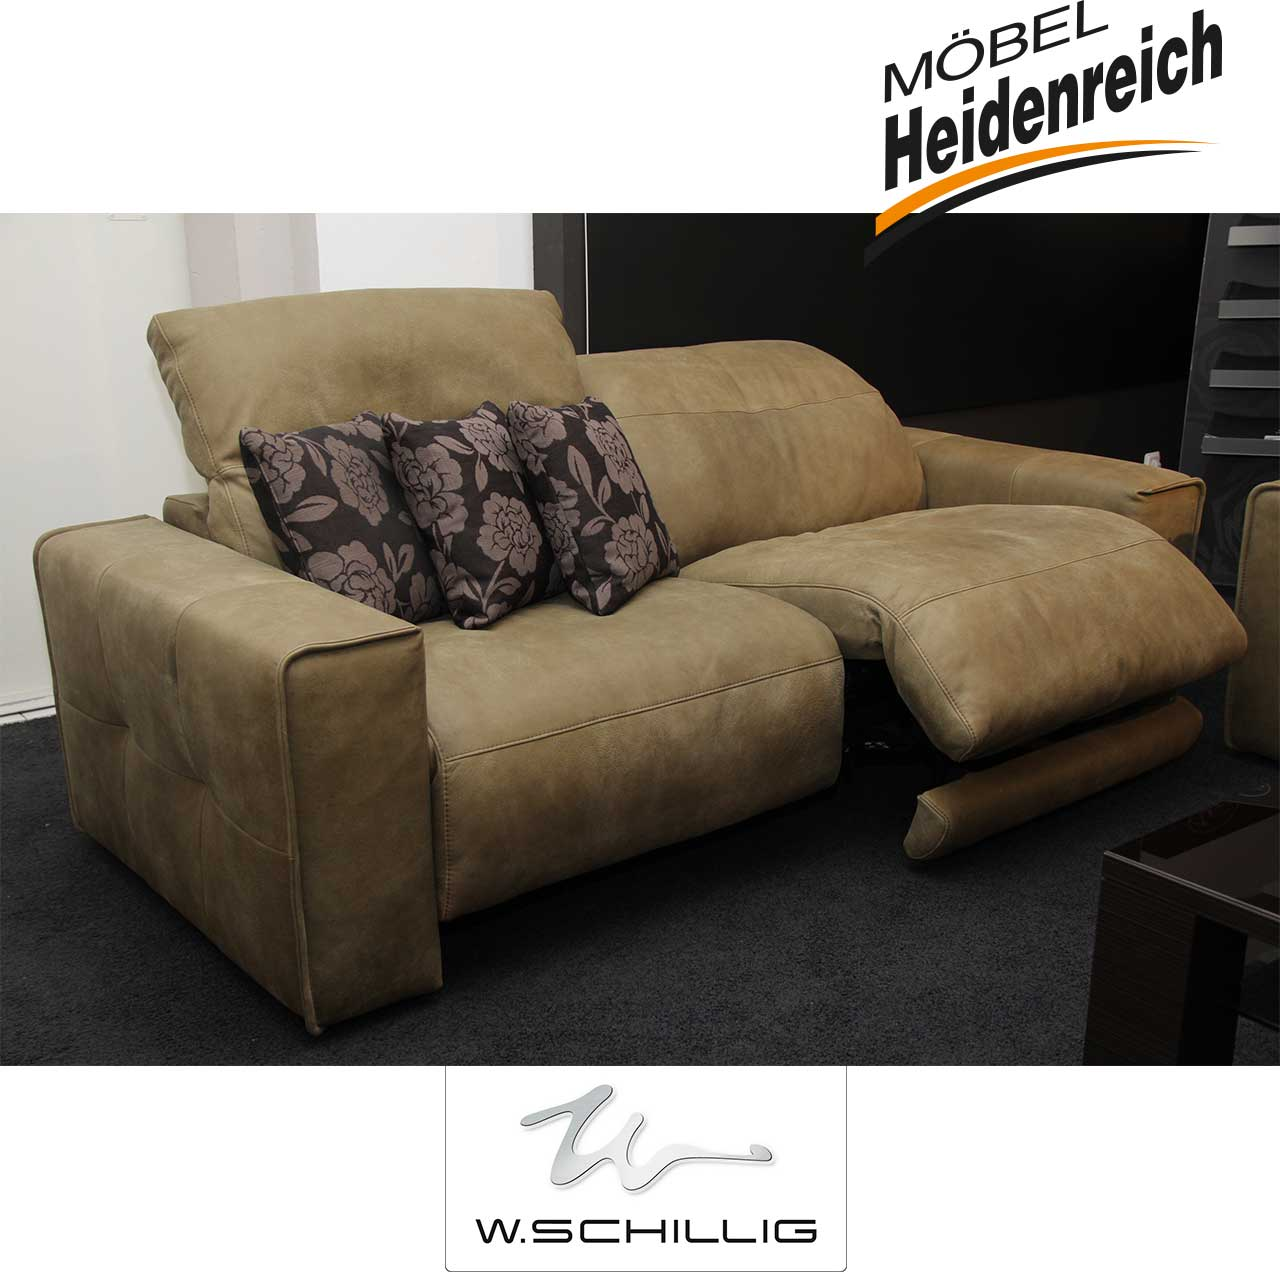 w schillig sofa garnitur giuuseppe black label w schillig marken m bel heidenreich. Black Bedroom Furniture Sets. Home Design Ideas